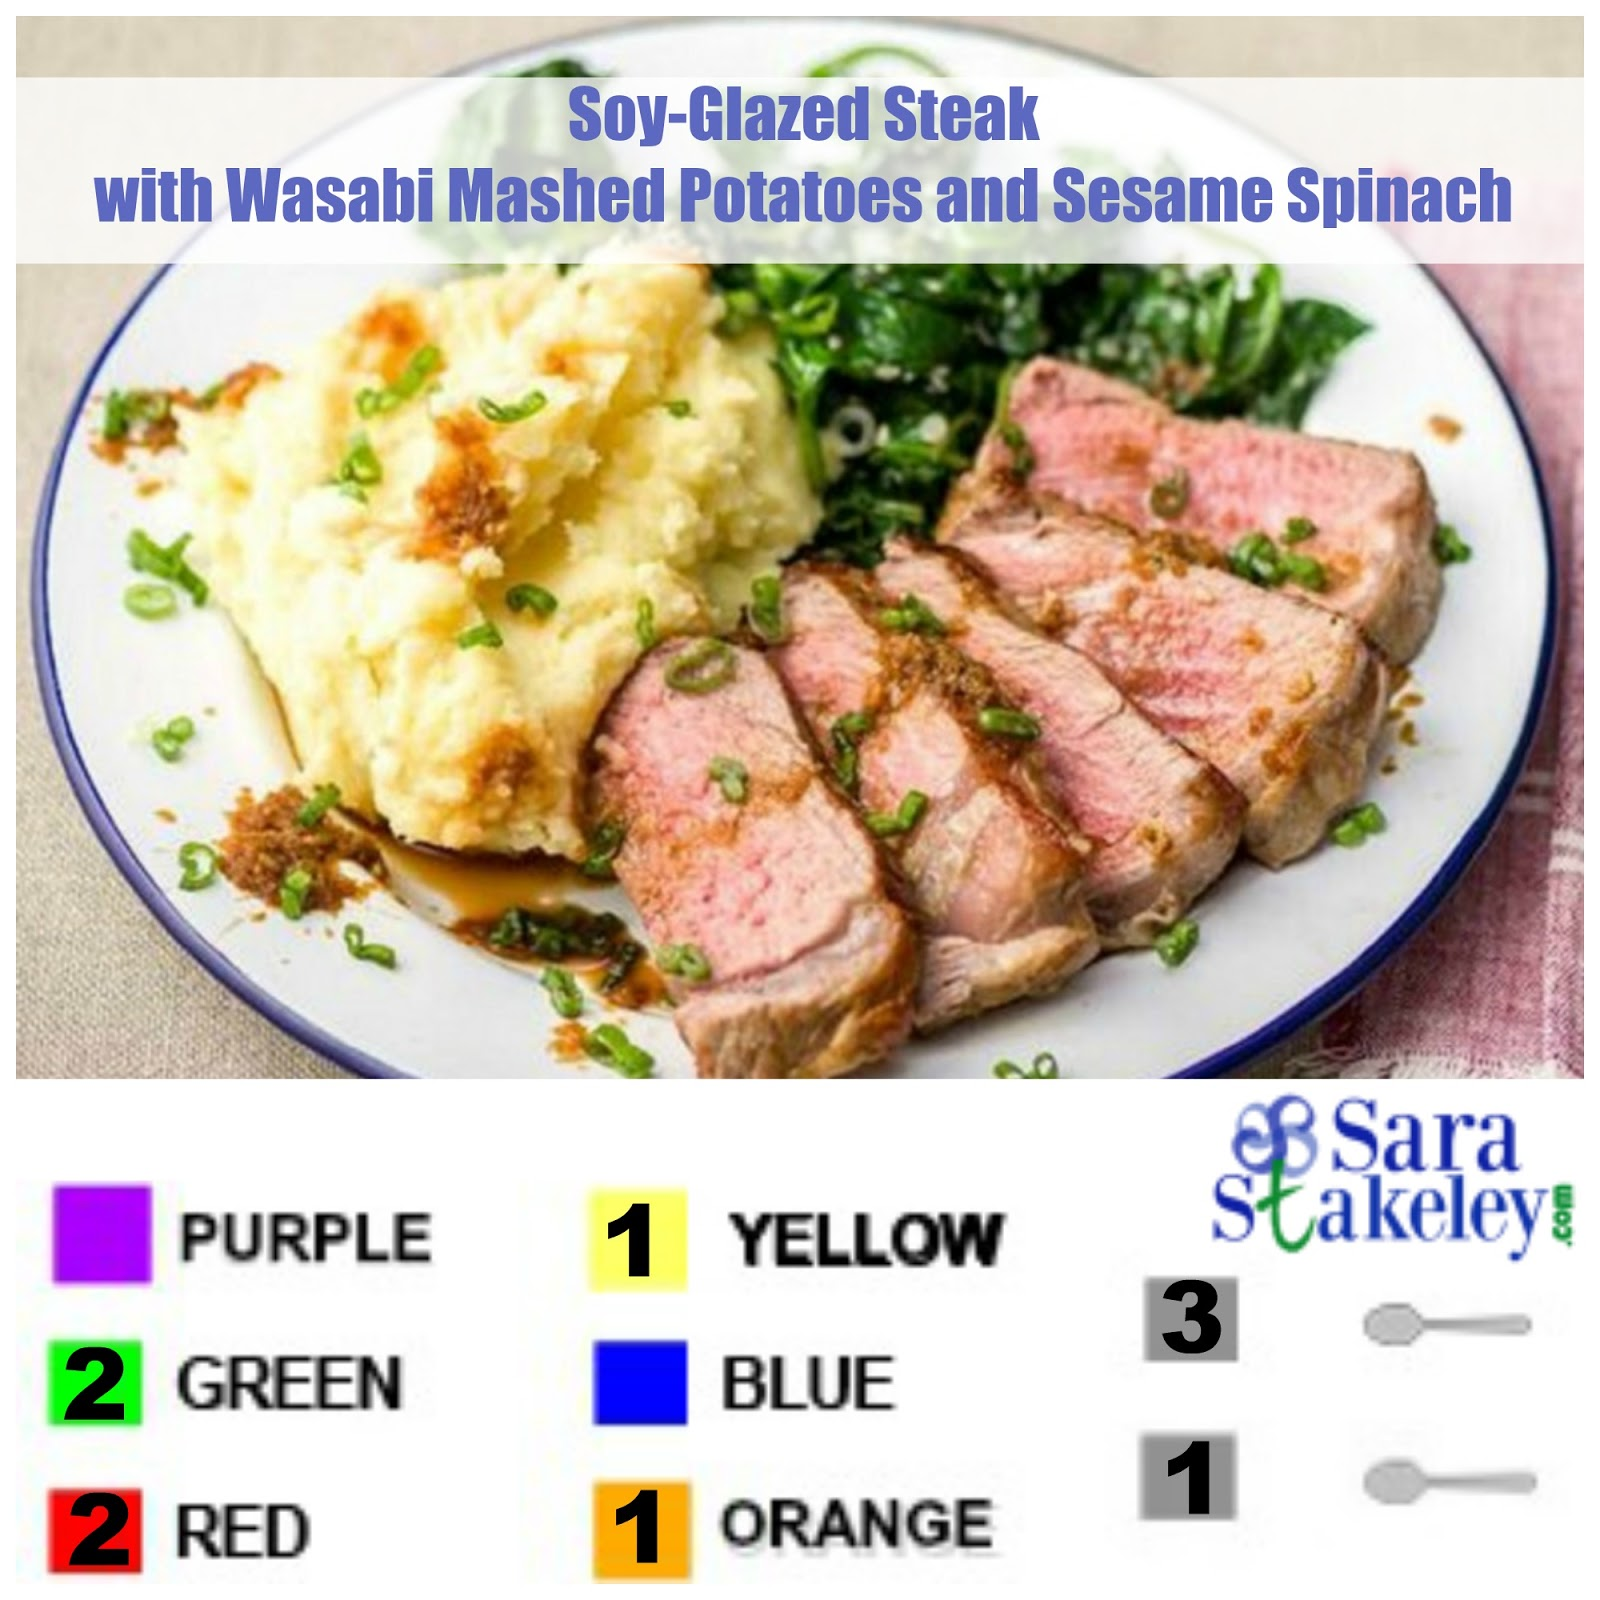 ... this soy glazed steak with wasabi mashed potatoes and sesame spinach